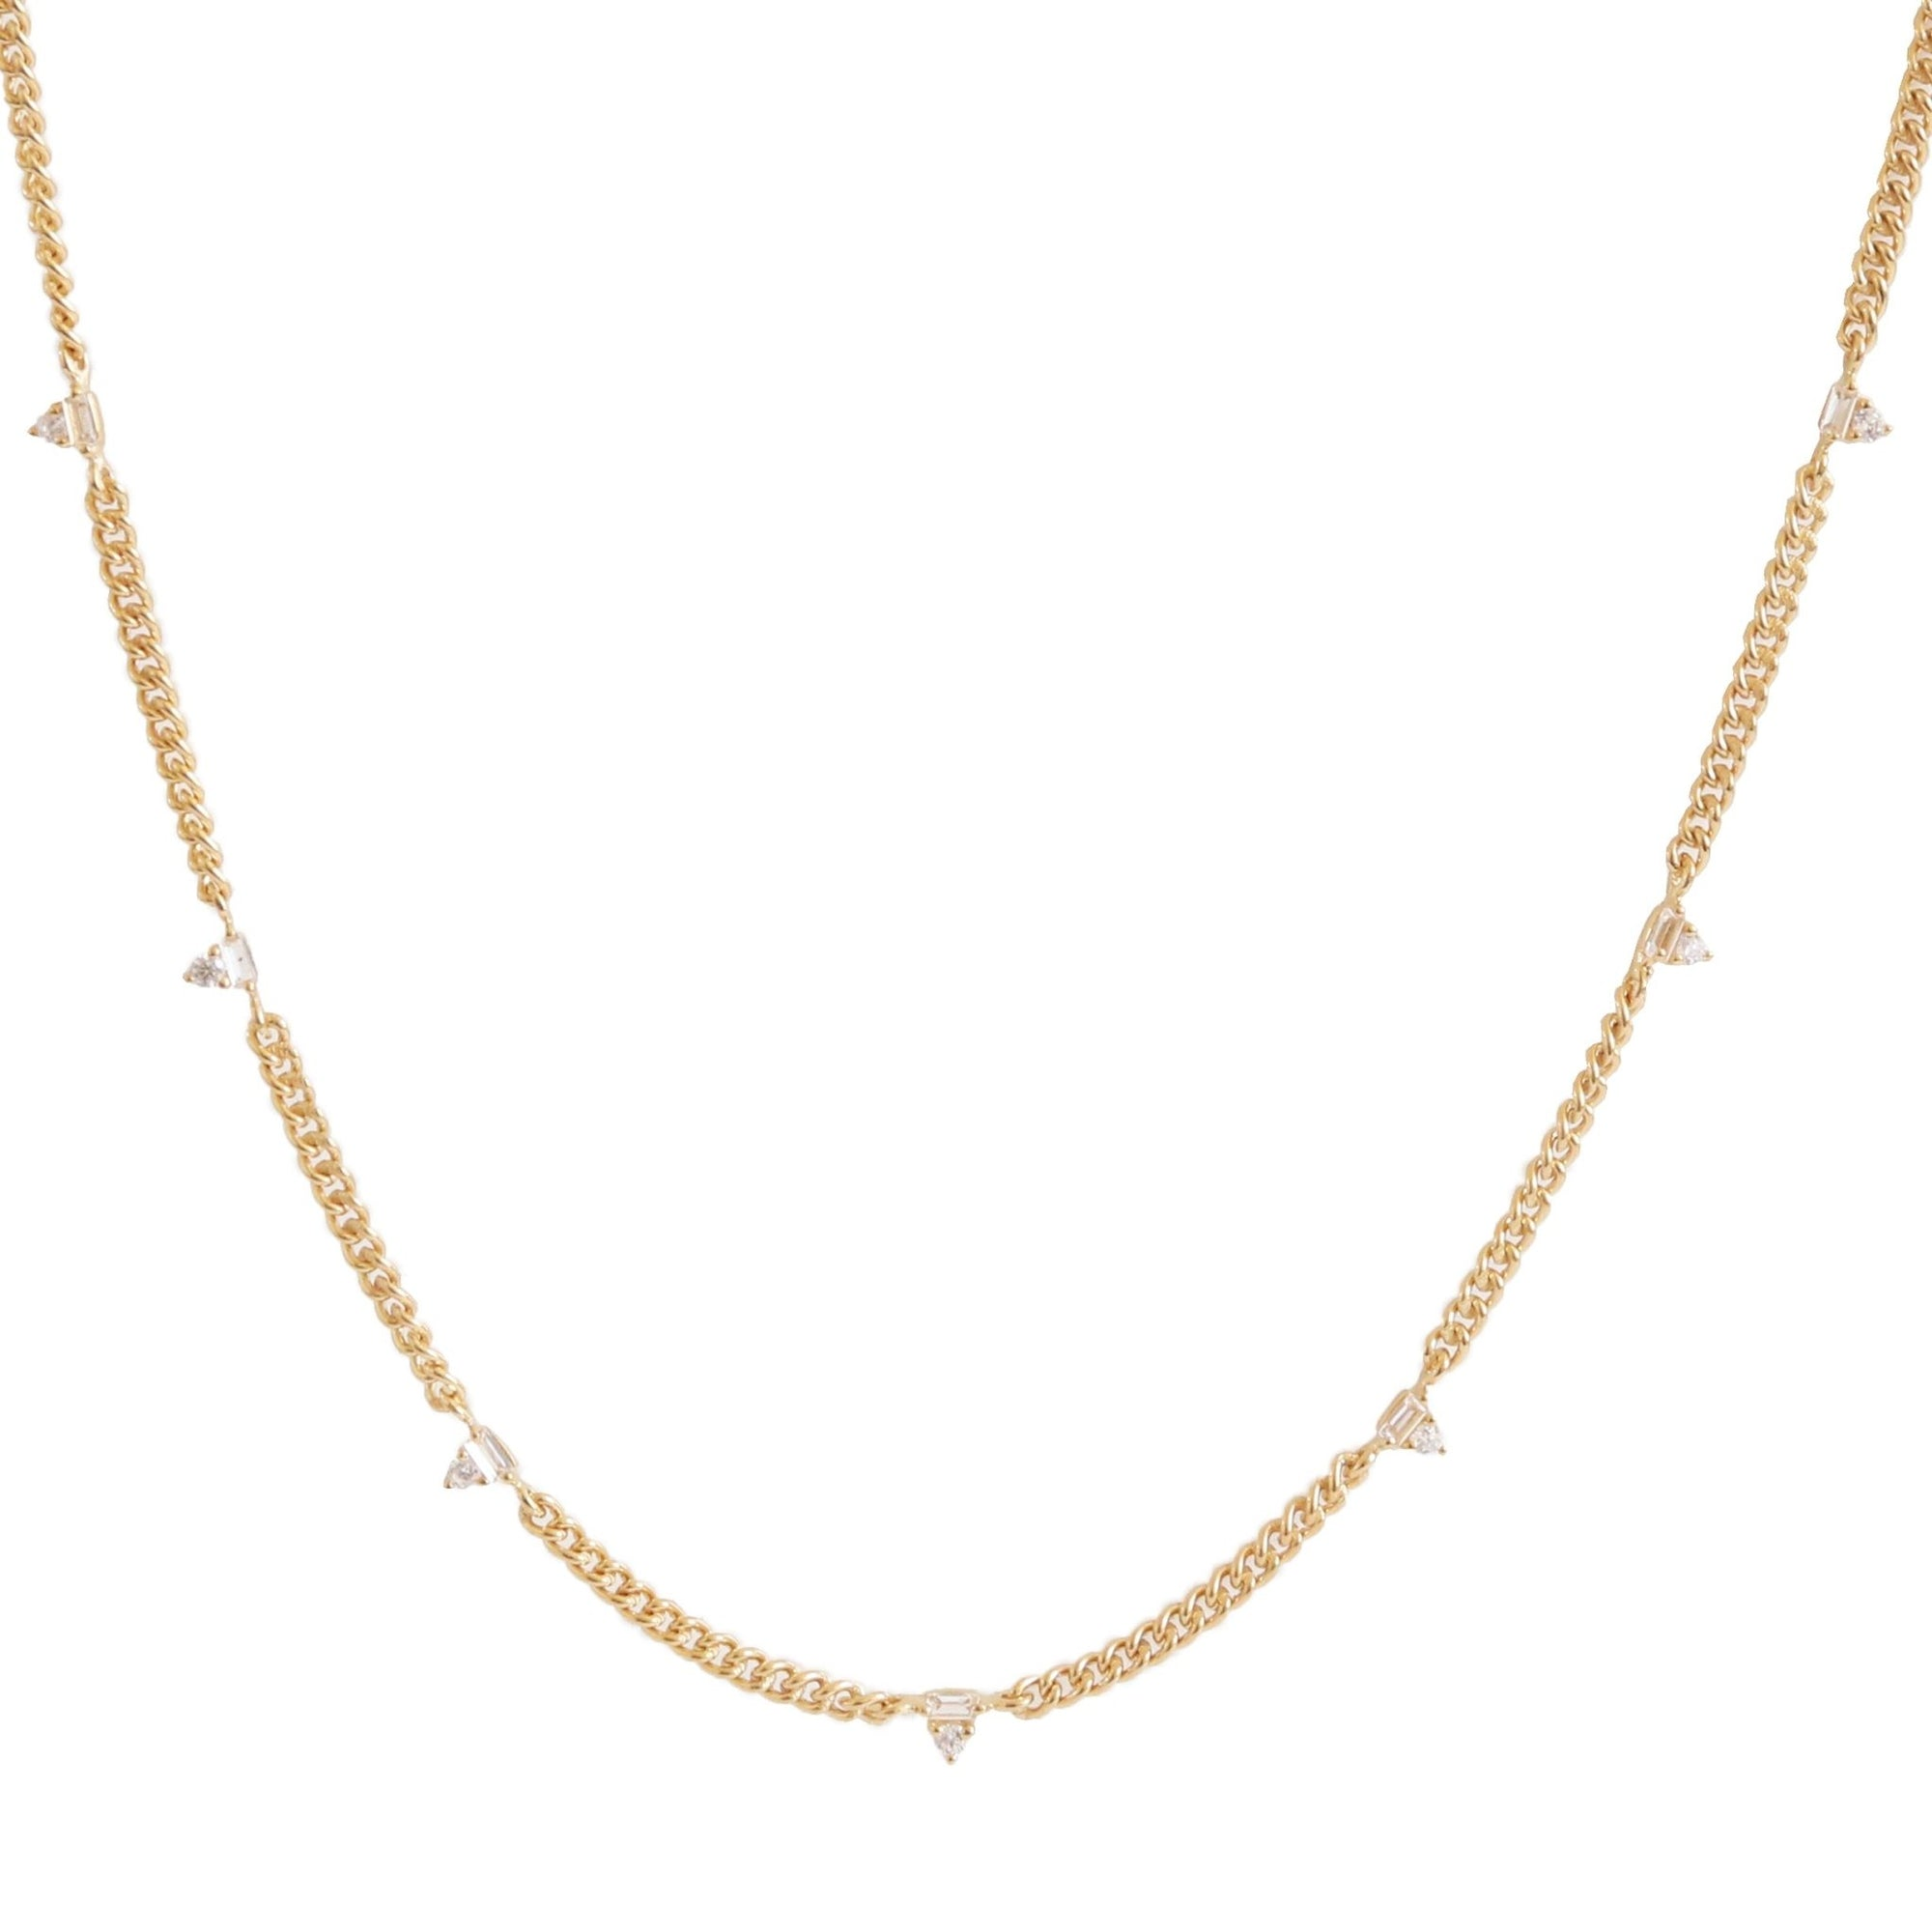 Loyal Prism Curb Link Necklace - White Topaz, Cubic Zirconia & Gold - SO PRETTY CARA COTTER